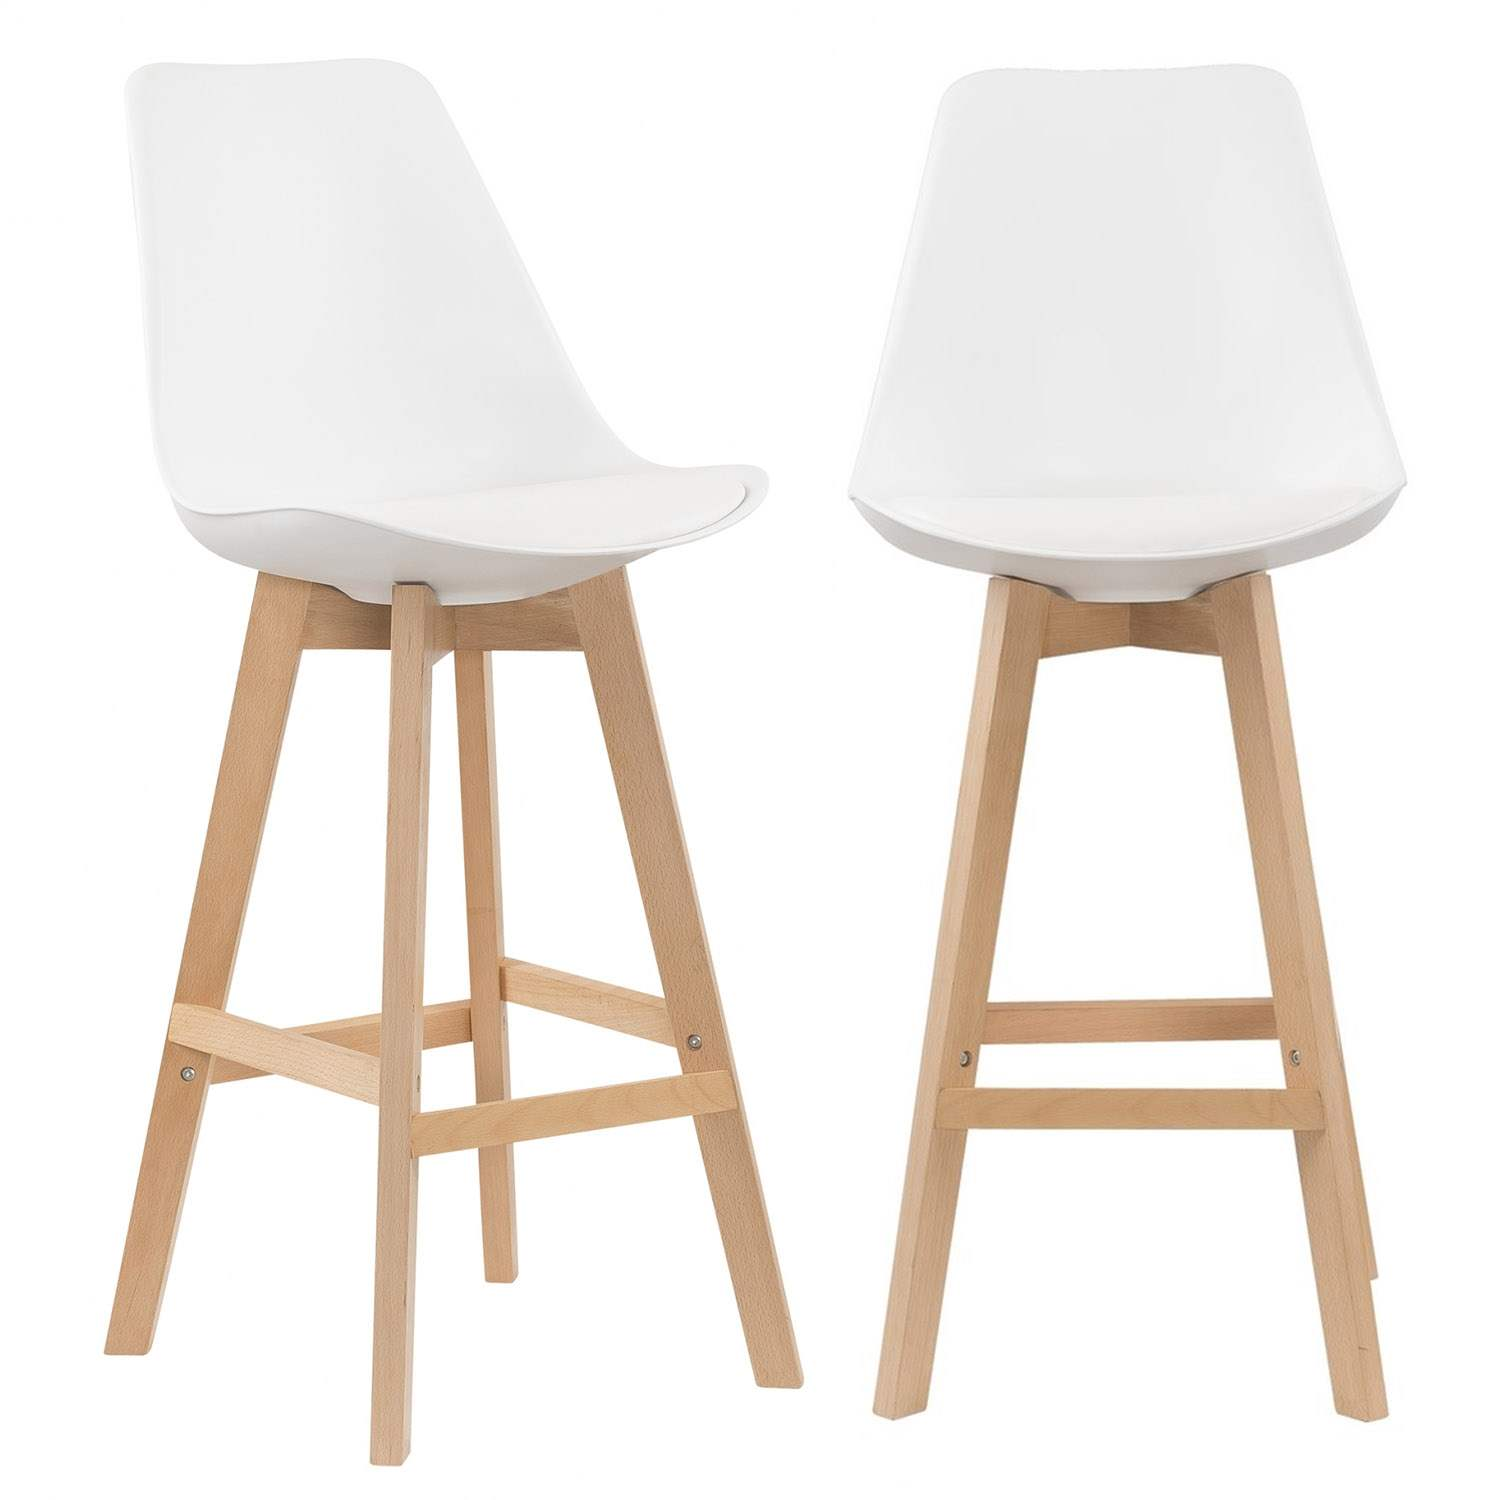 Deco in paris 5 lot de 2 tabourets de bar scandinave blanc gala tabouret ga - Chaise de bar blanche ...